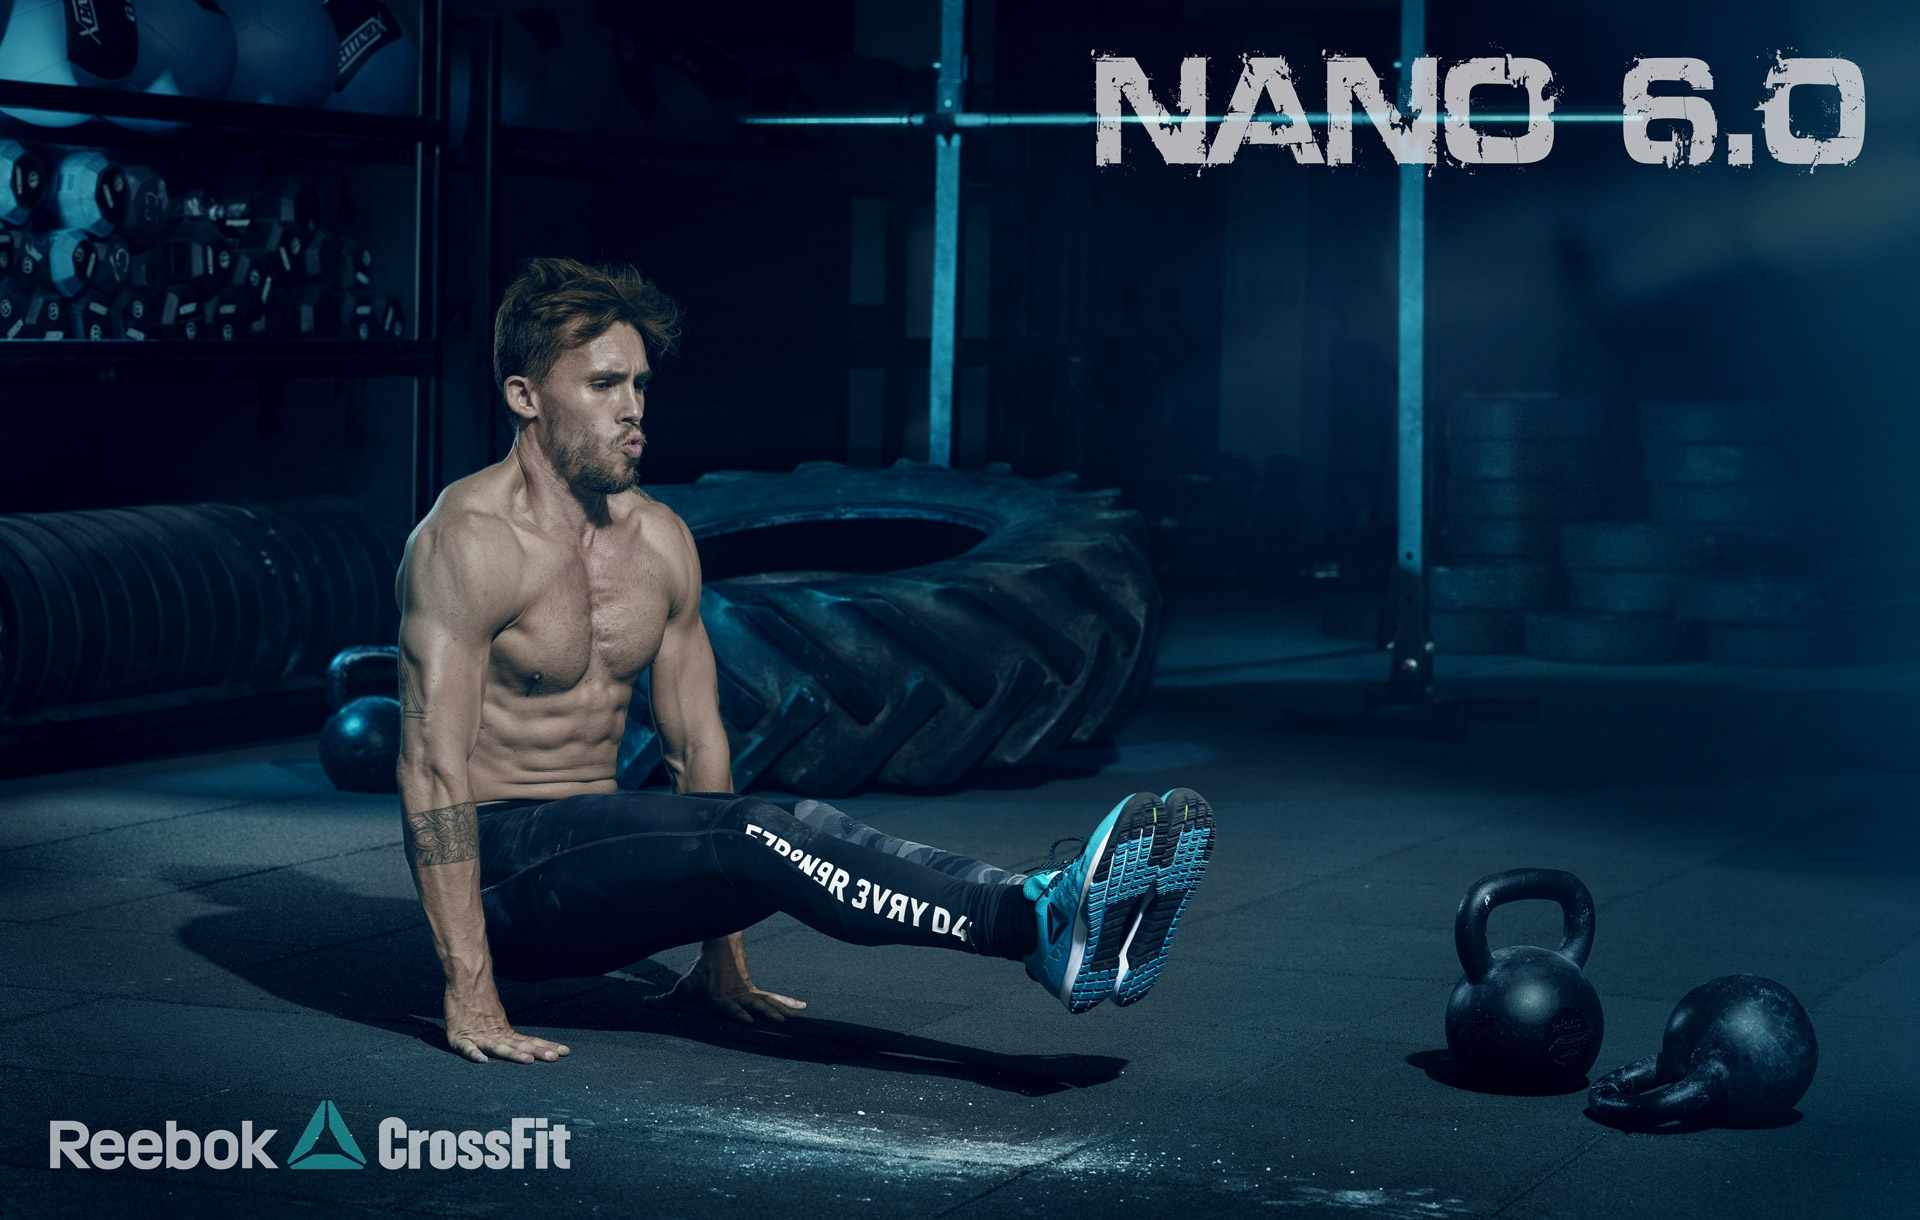 reebok crossfit fitness workout gym strong muscle nano frederic mercier fashion photographer one color